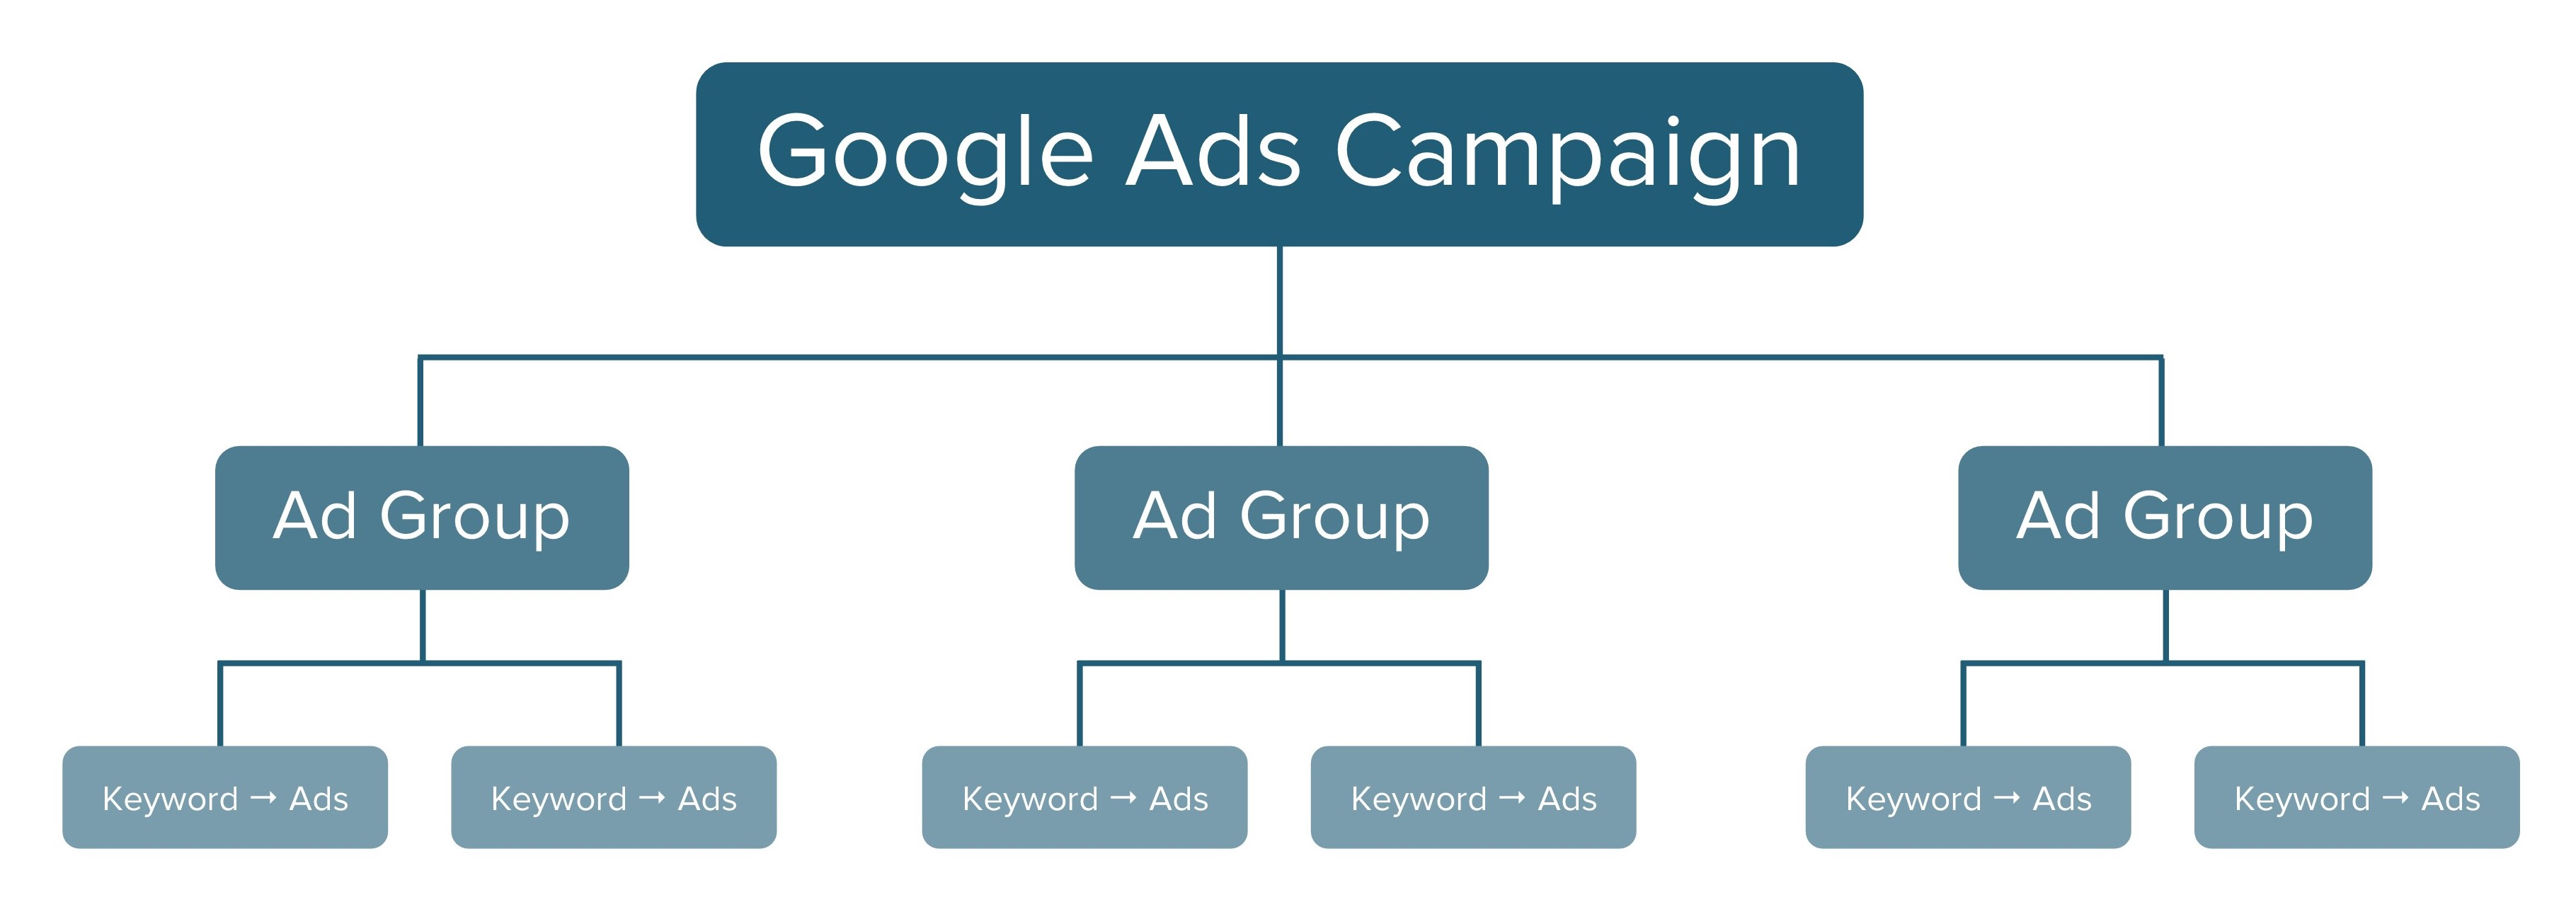 Google Ads campaign hierarchy chart | The 6-Step Guide to Mastering Google Ads for Therapists | Brighter Vision | Marketing Blog for Therapists